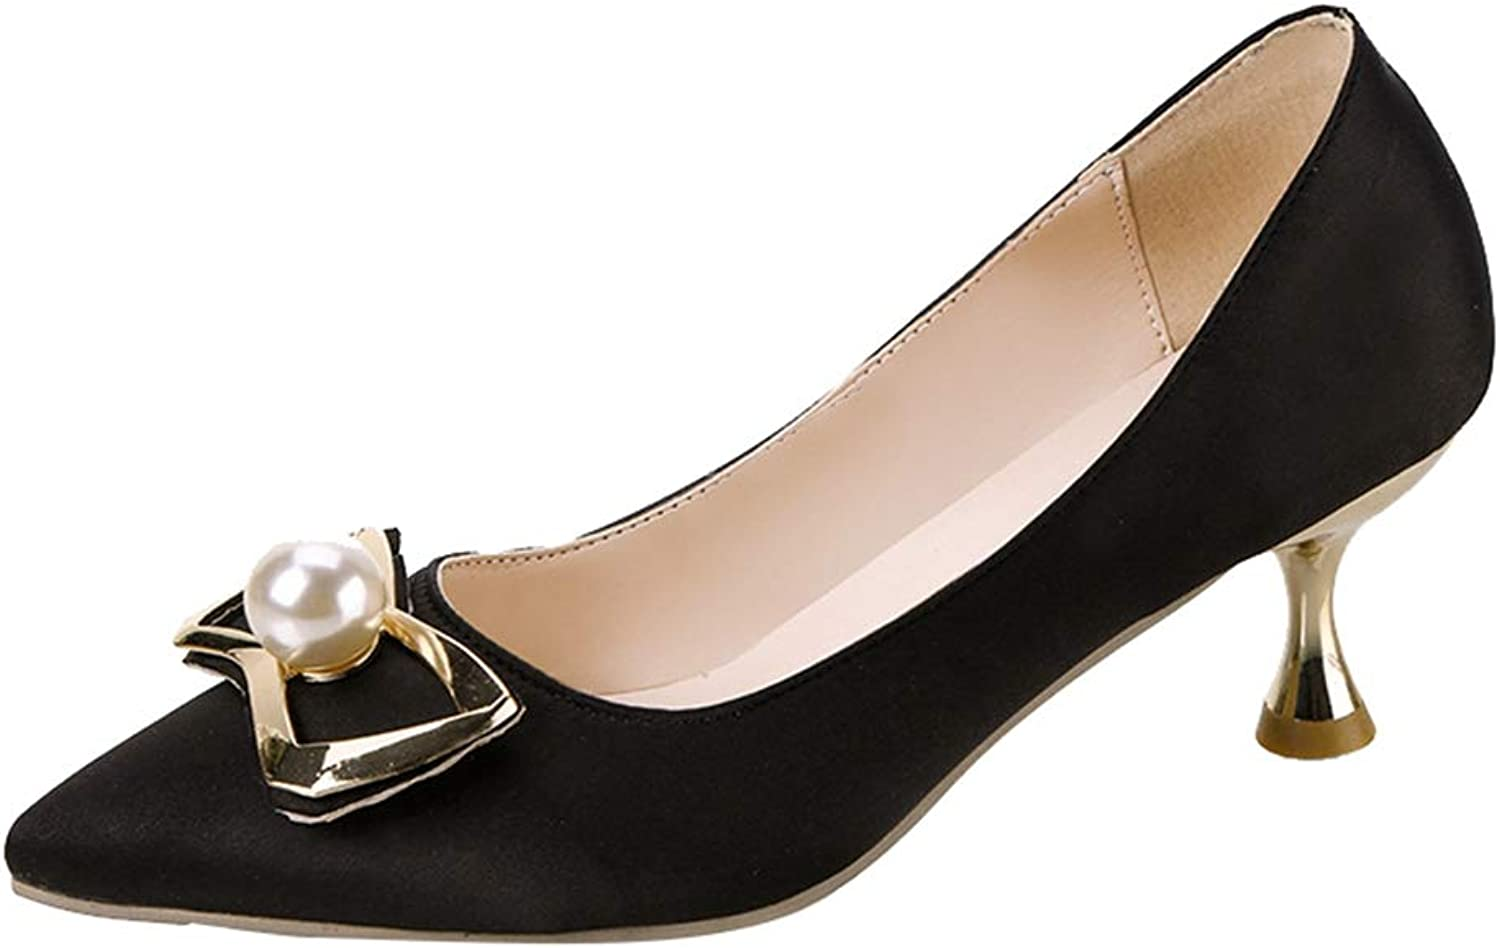 Sam Carle Women's Pumps, Elegant Pearl Bow-Knot Anti-Slip Thin Heel Shallow Mouth shoes